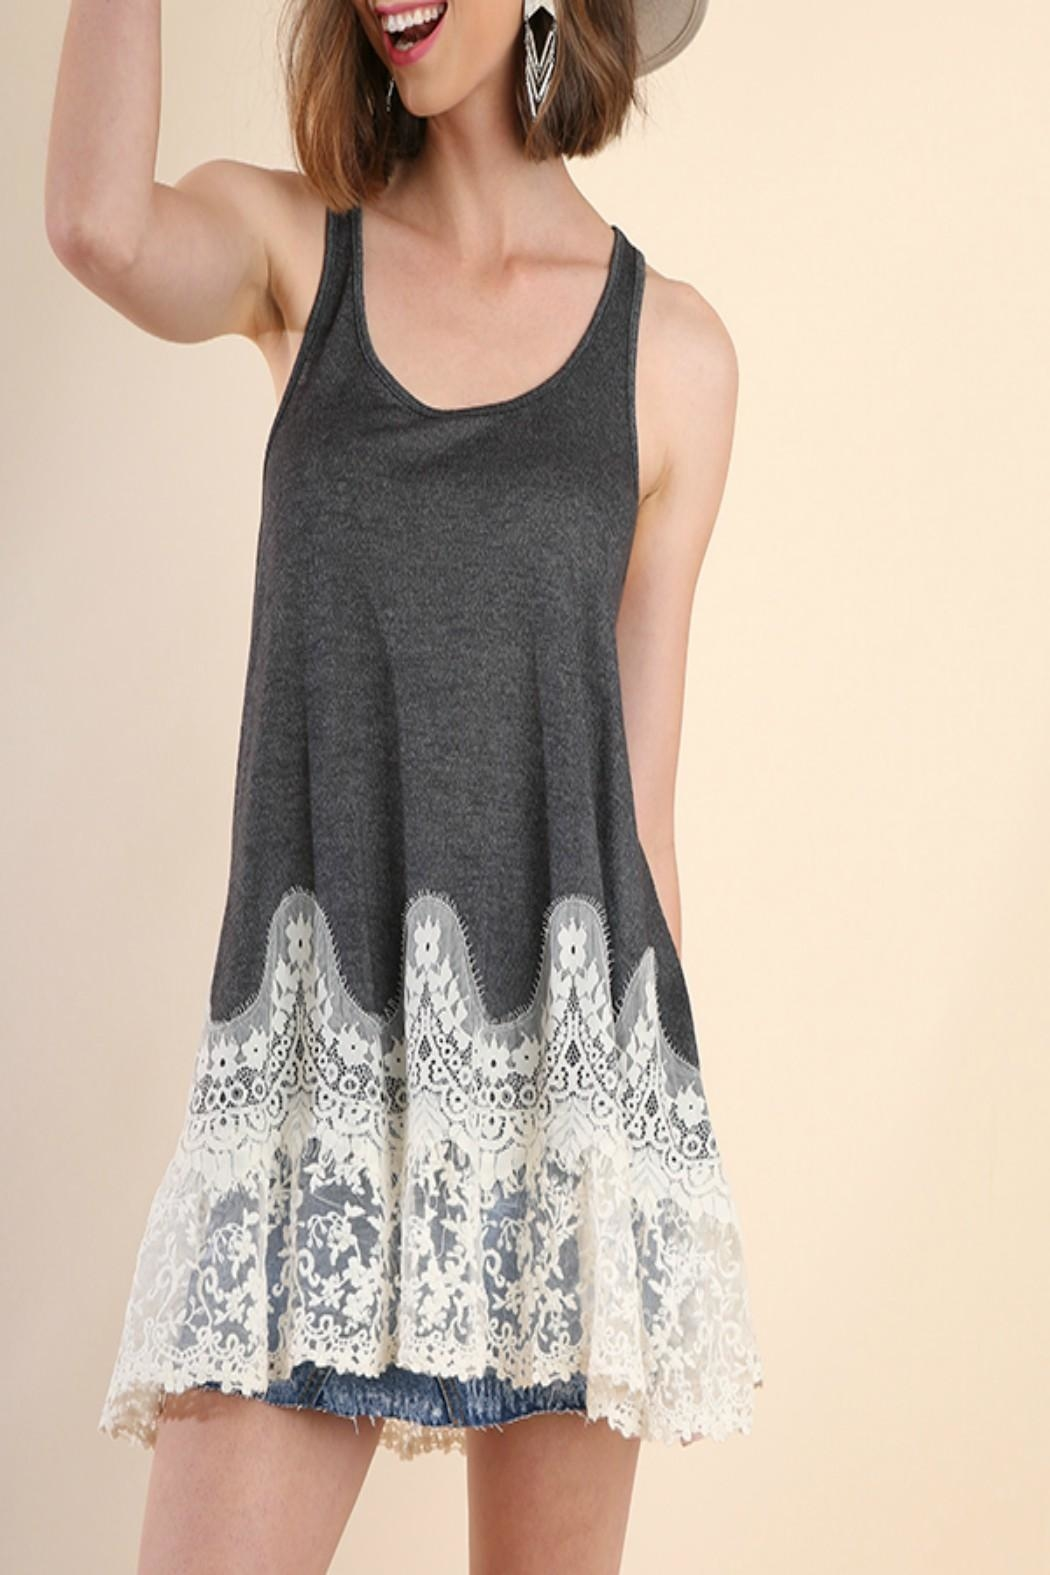 eabbbb8db76 Umgee USA Floral-Lace Tank Top from Kansas by Seirer s Clothing ...